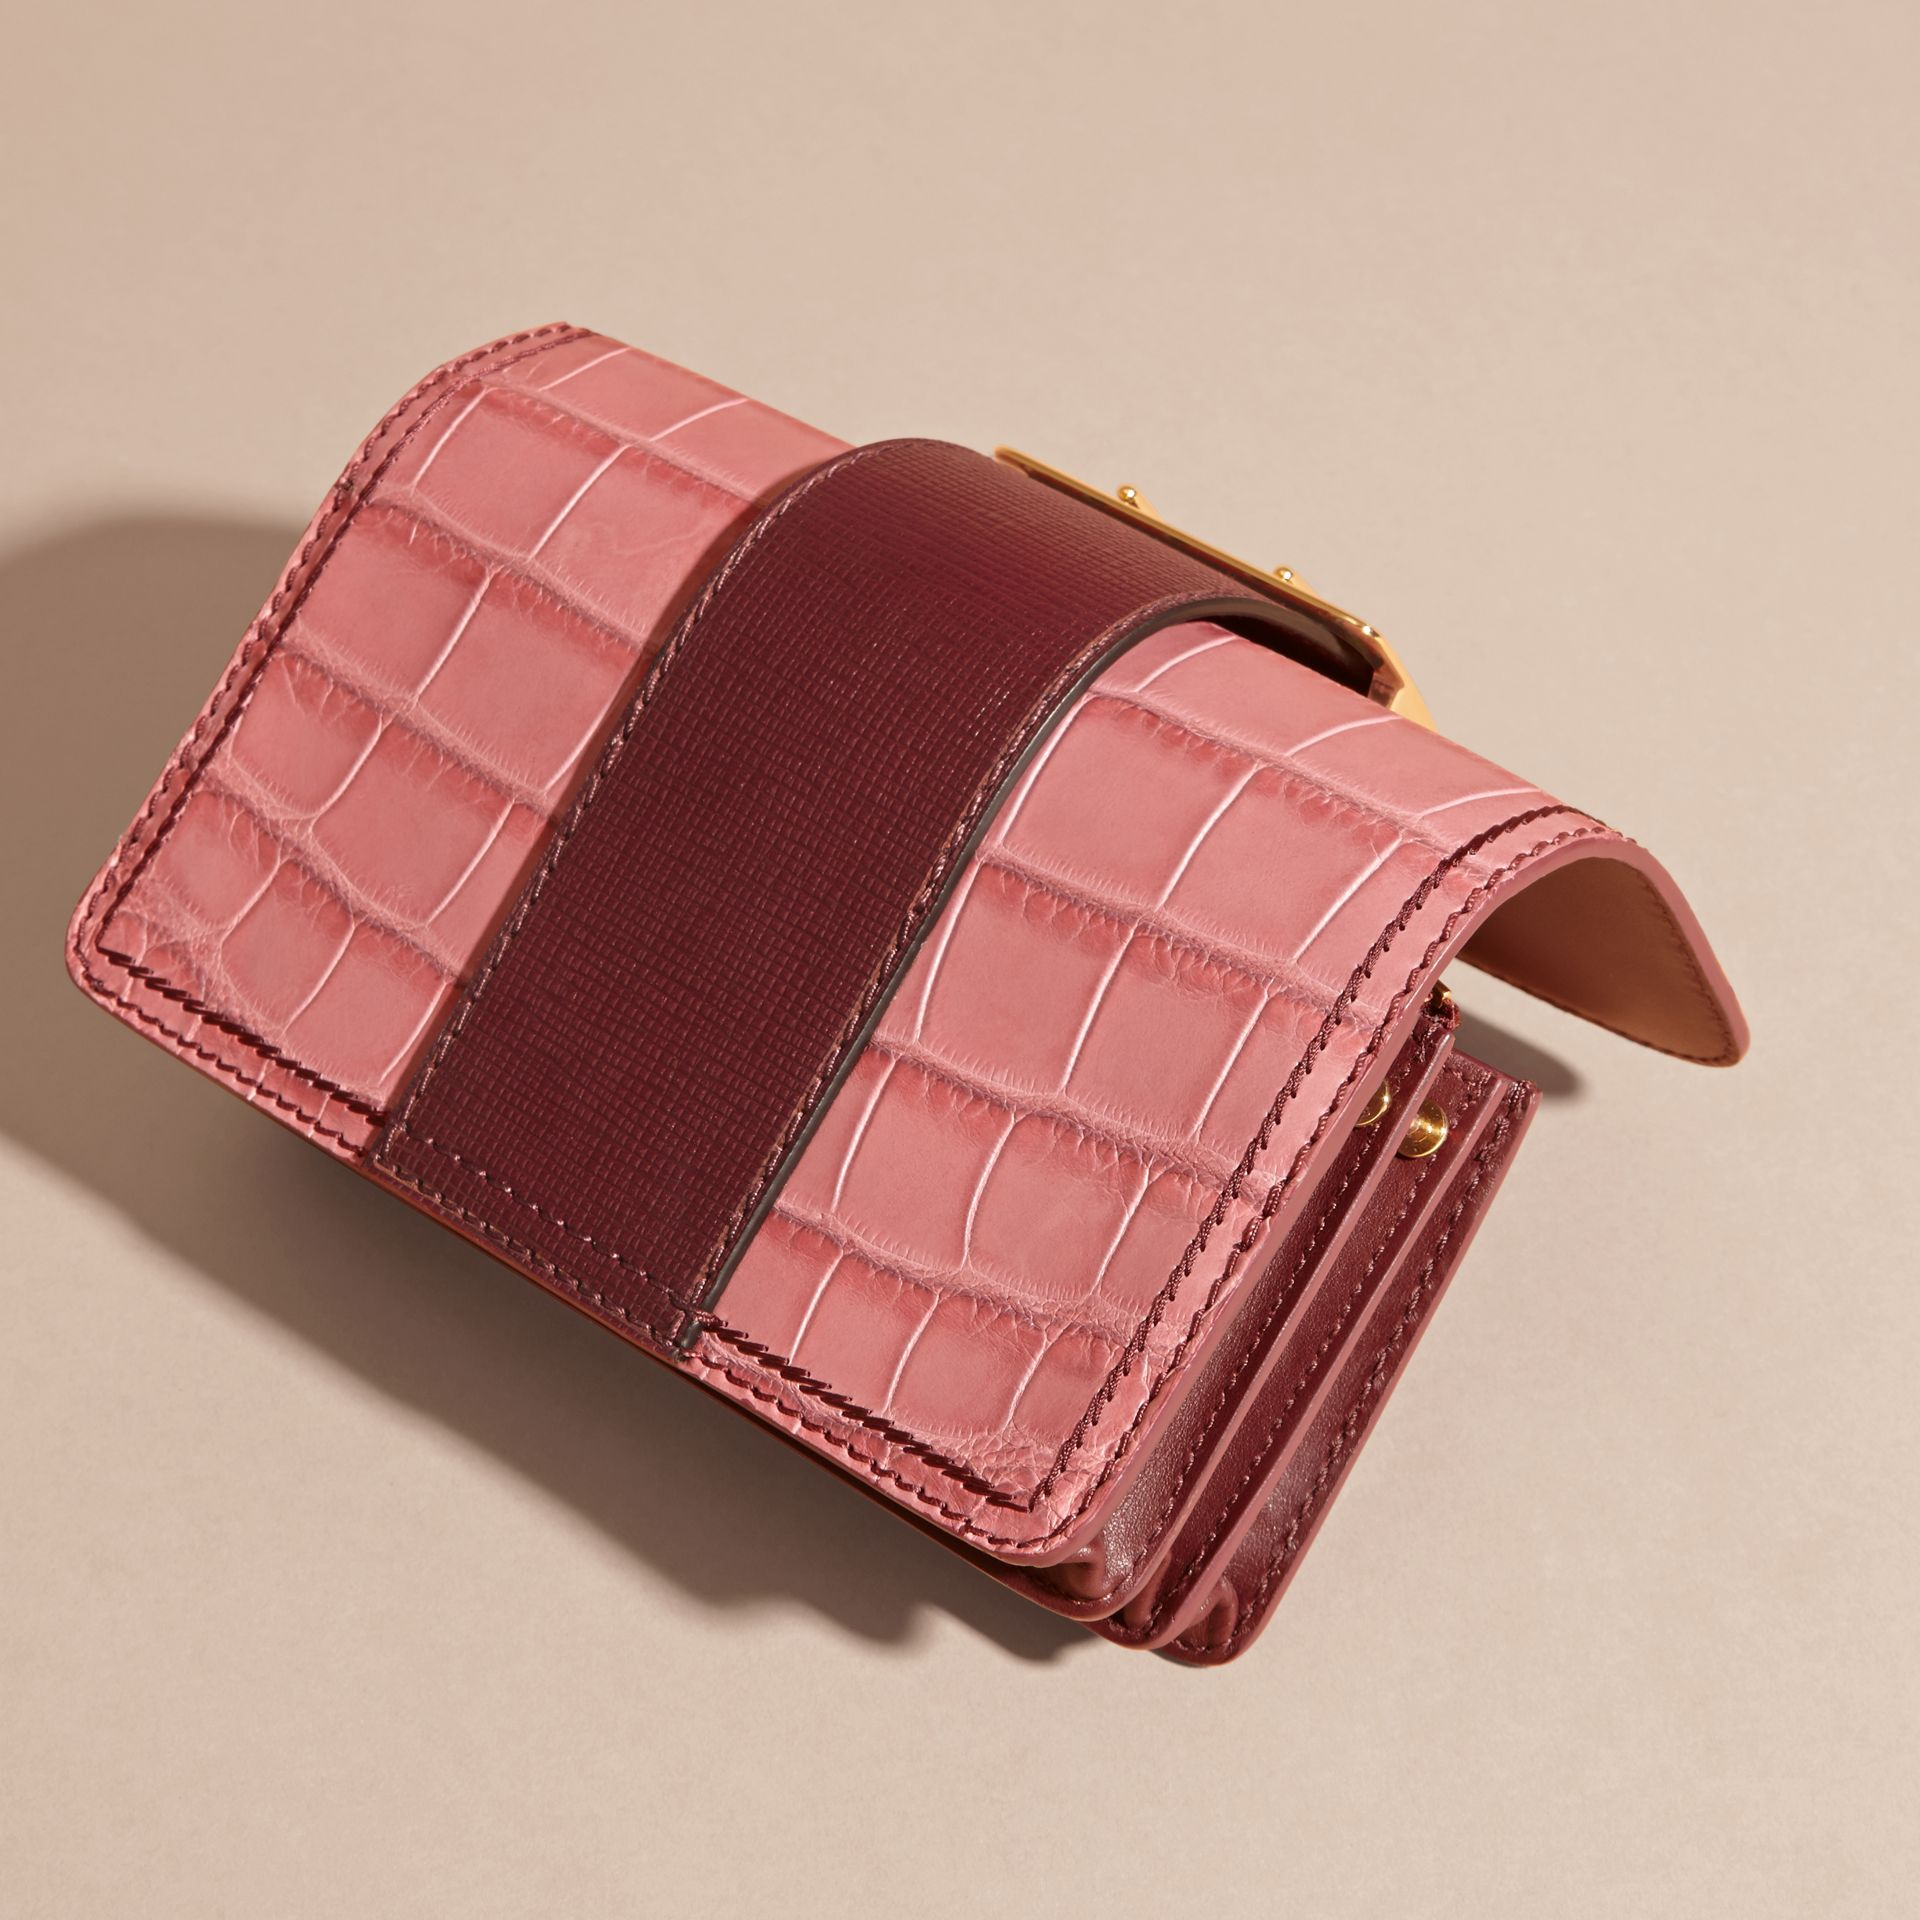 Dusky pink/ burgundy The Small Buckle Bag in Alligator and Leather Dusky Pink/ Burgundy - gallery image 7